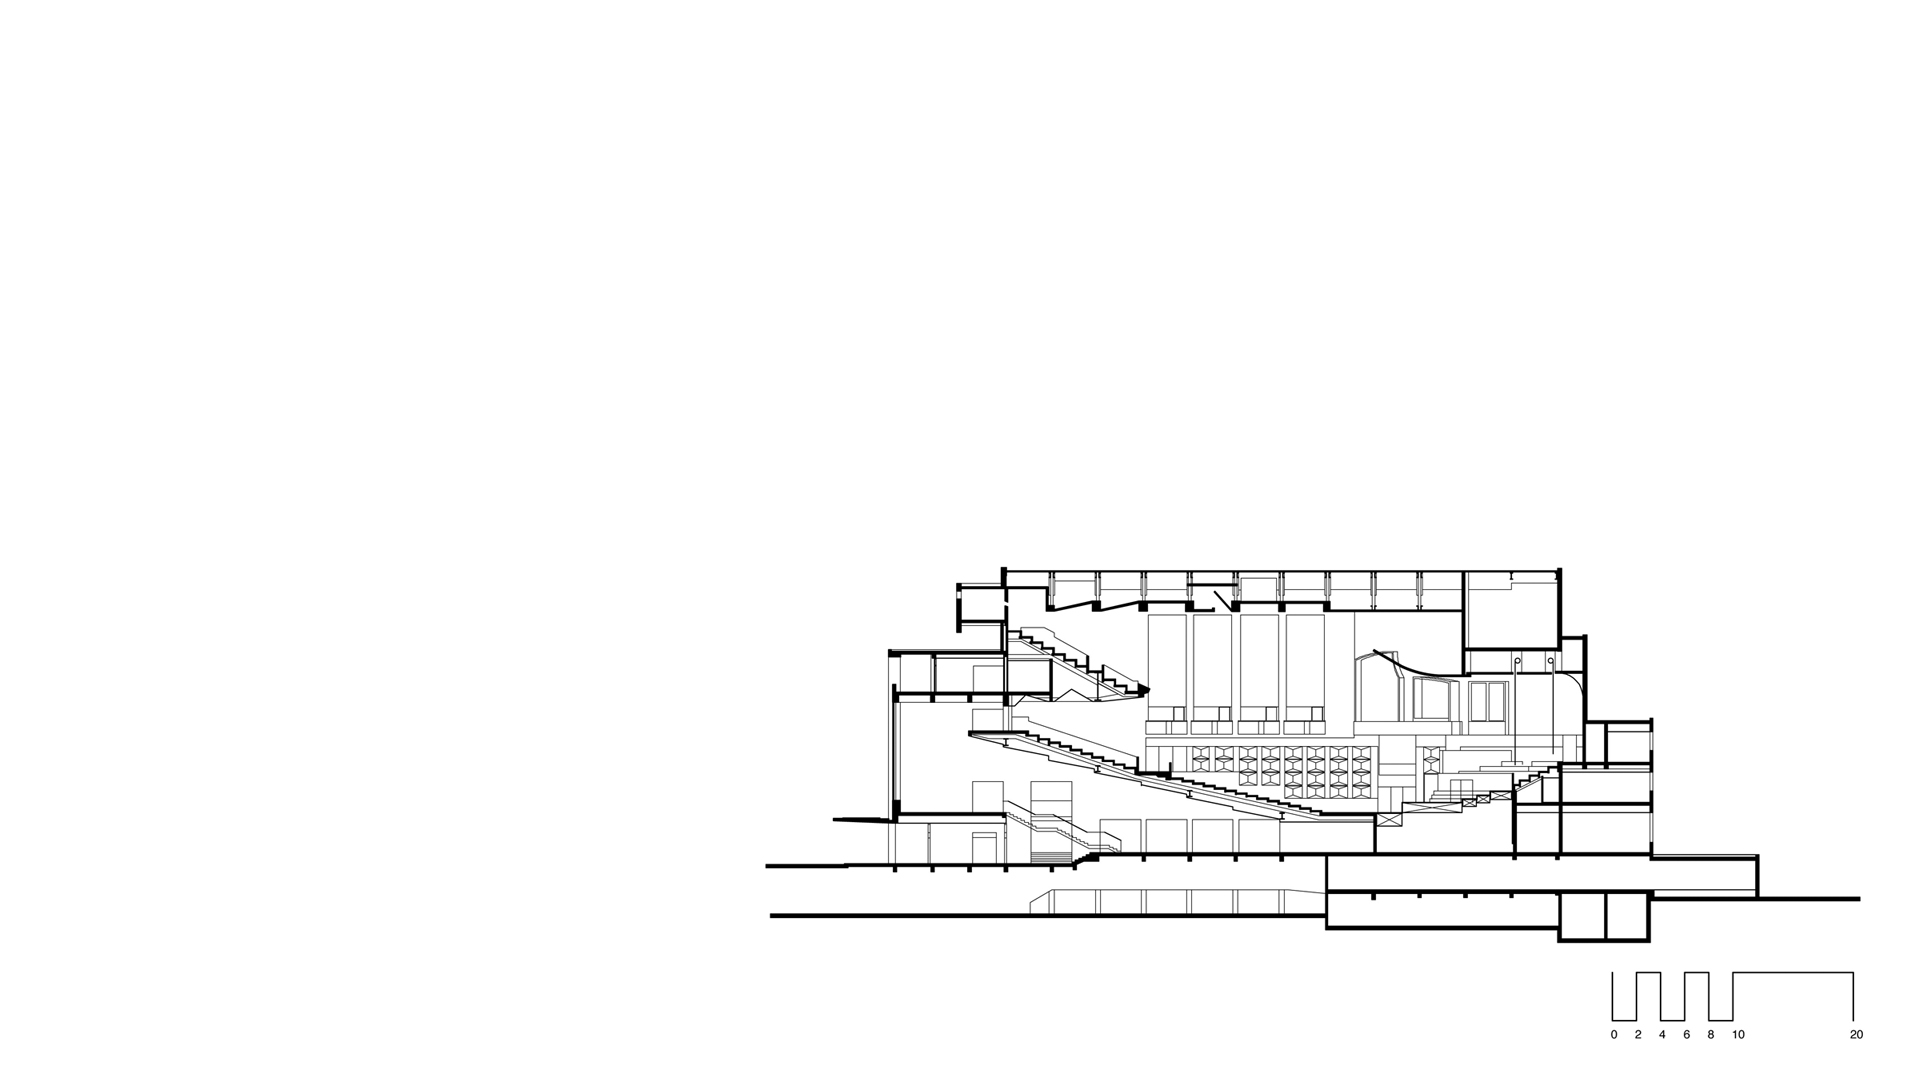 Proposed remodelling and expansion of Fairfield Halls showing section through the existing 1800 seat concert hall and foyer.